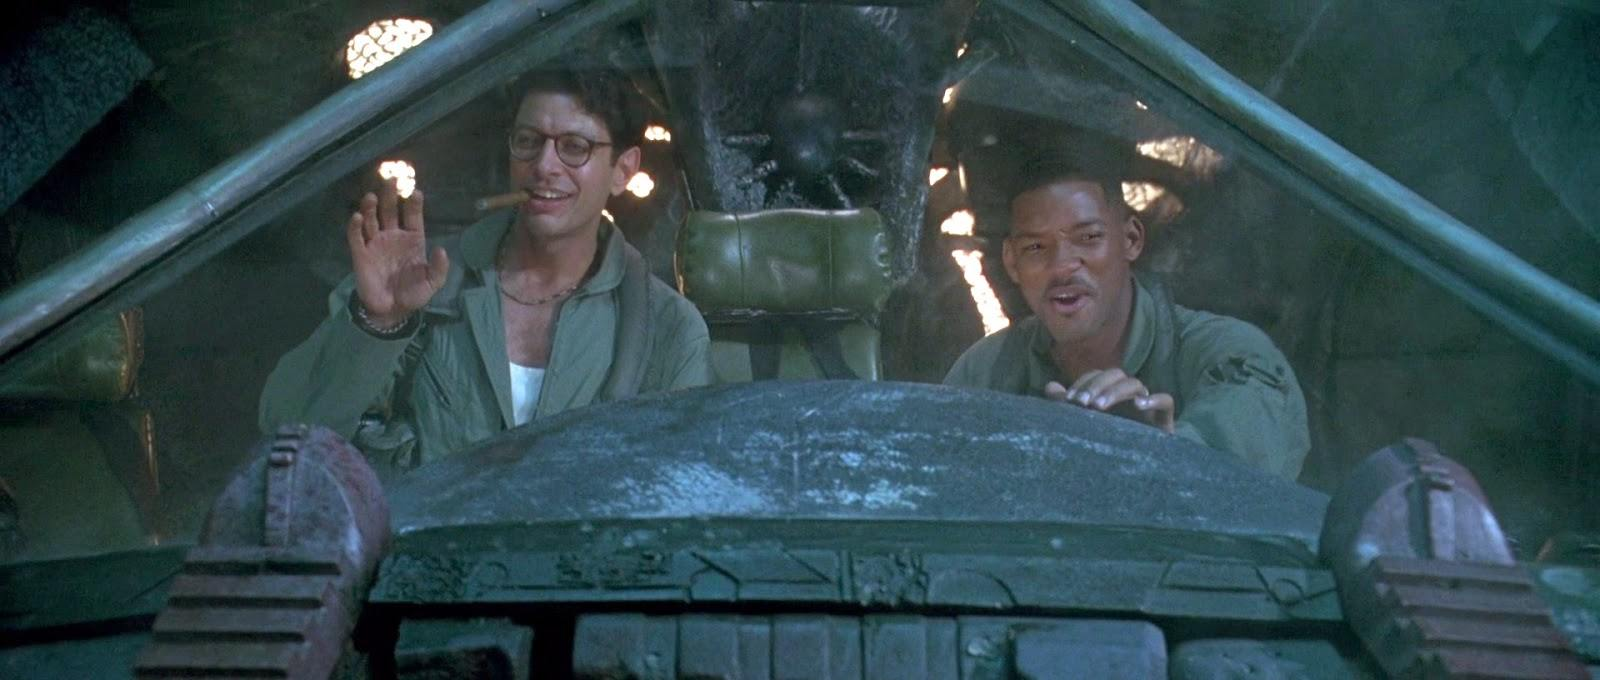 Heroes from the movie Independence Day preparing to complete their mission and head home